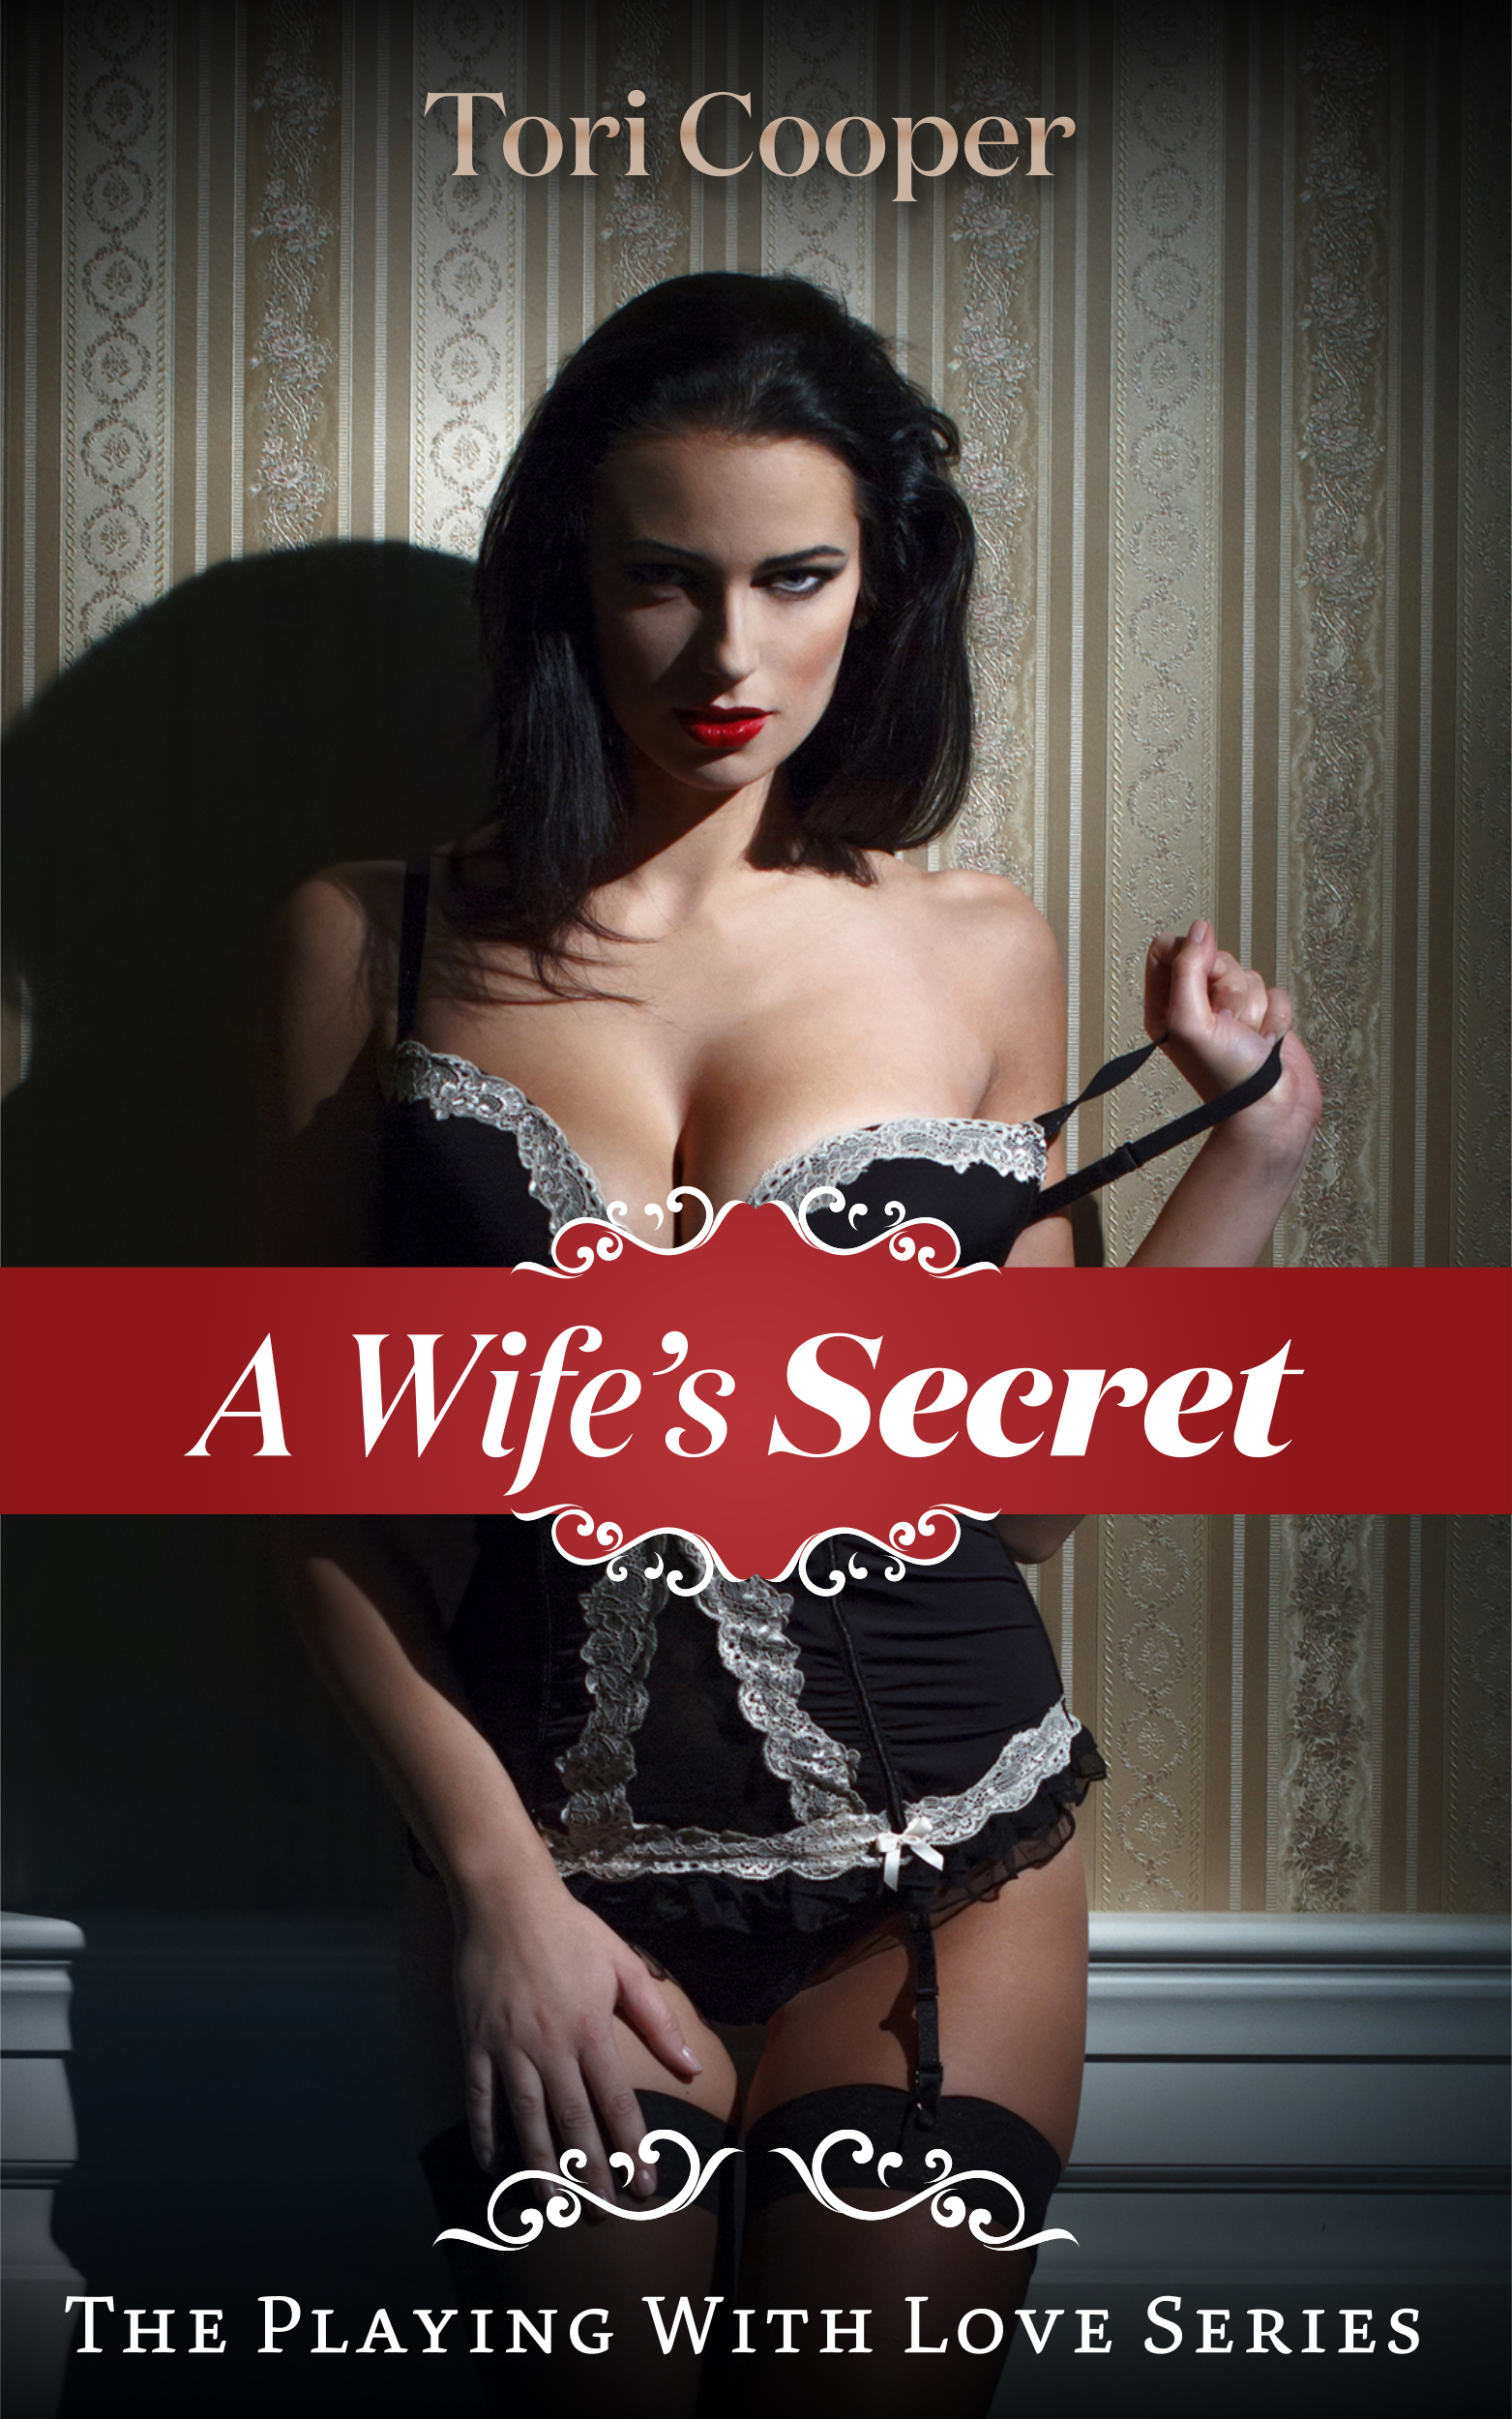 A Wife's Secret - ON AMAZON